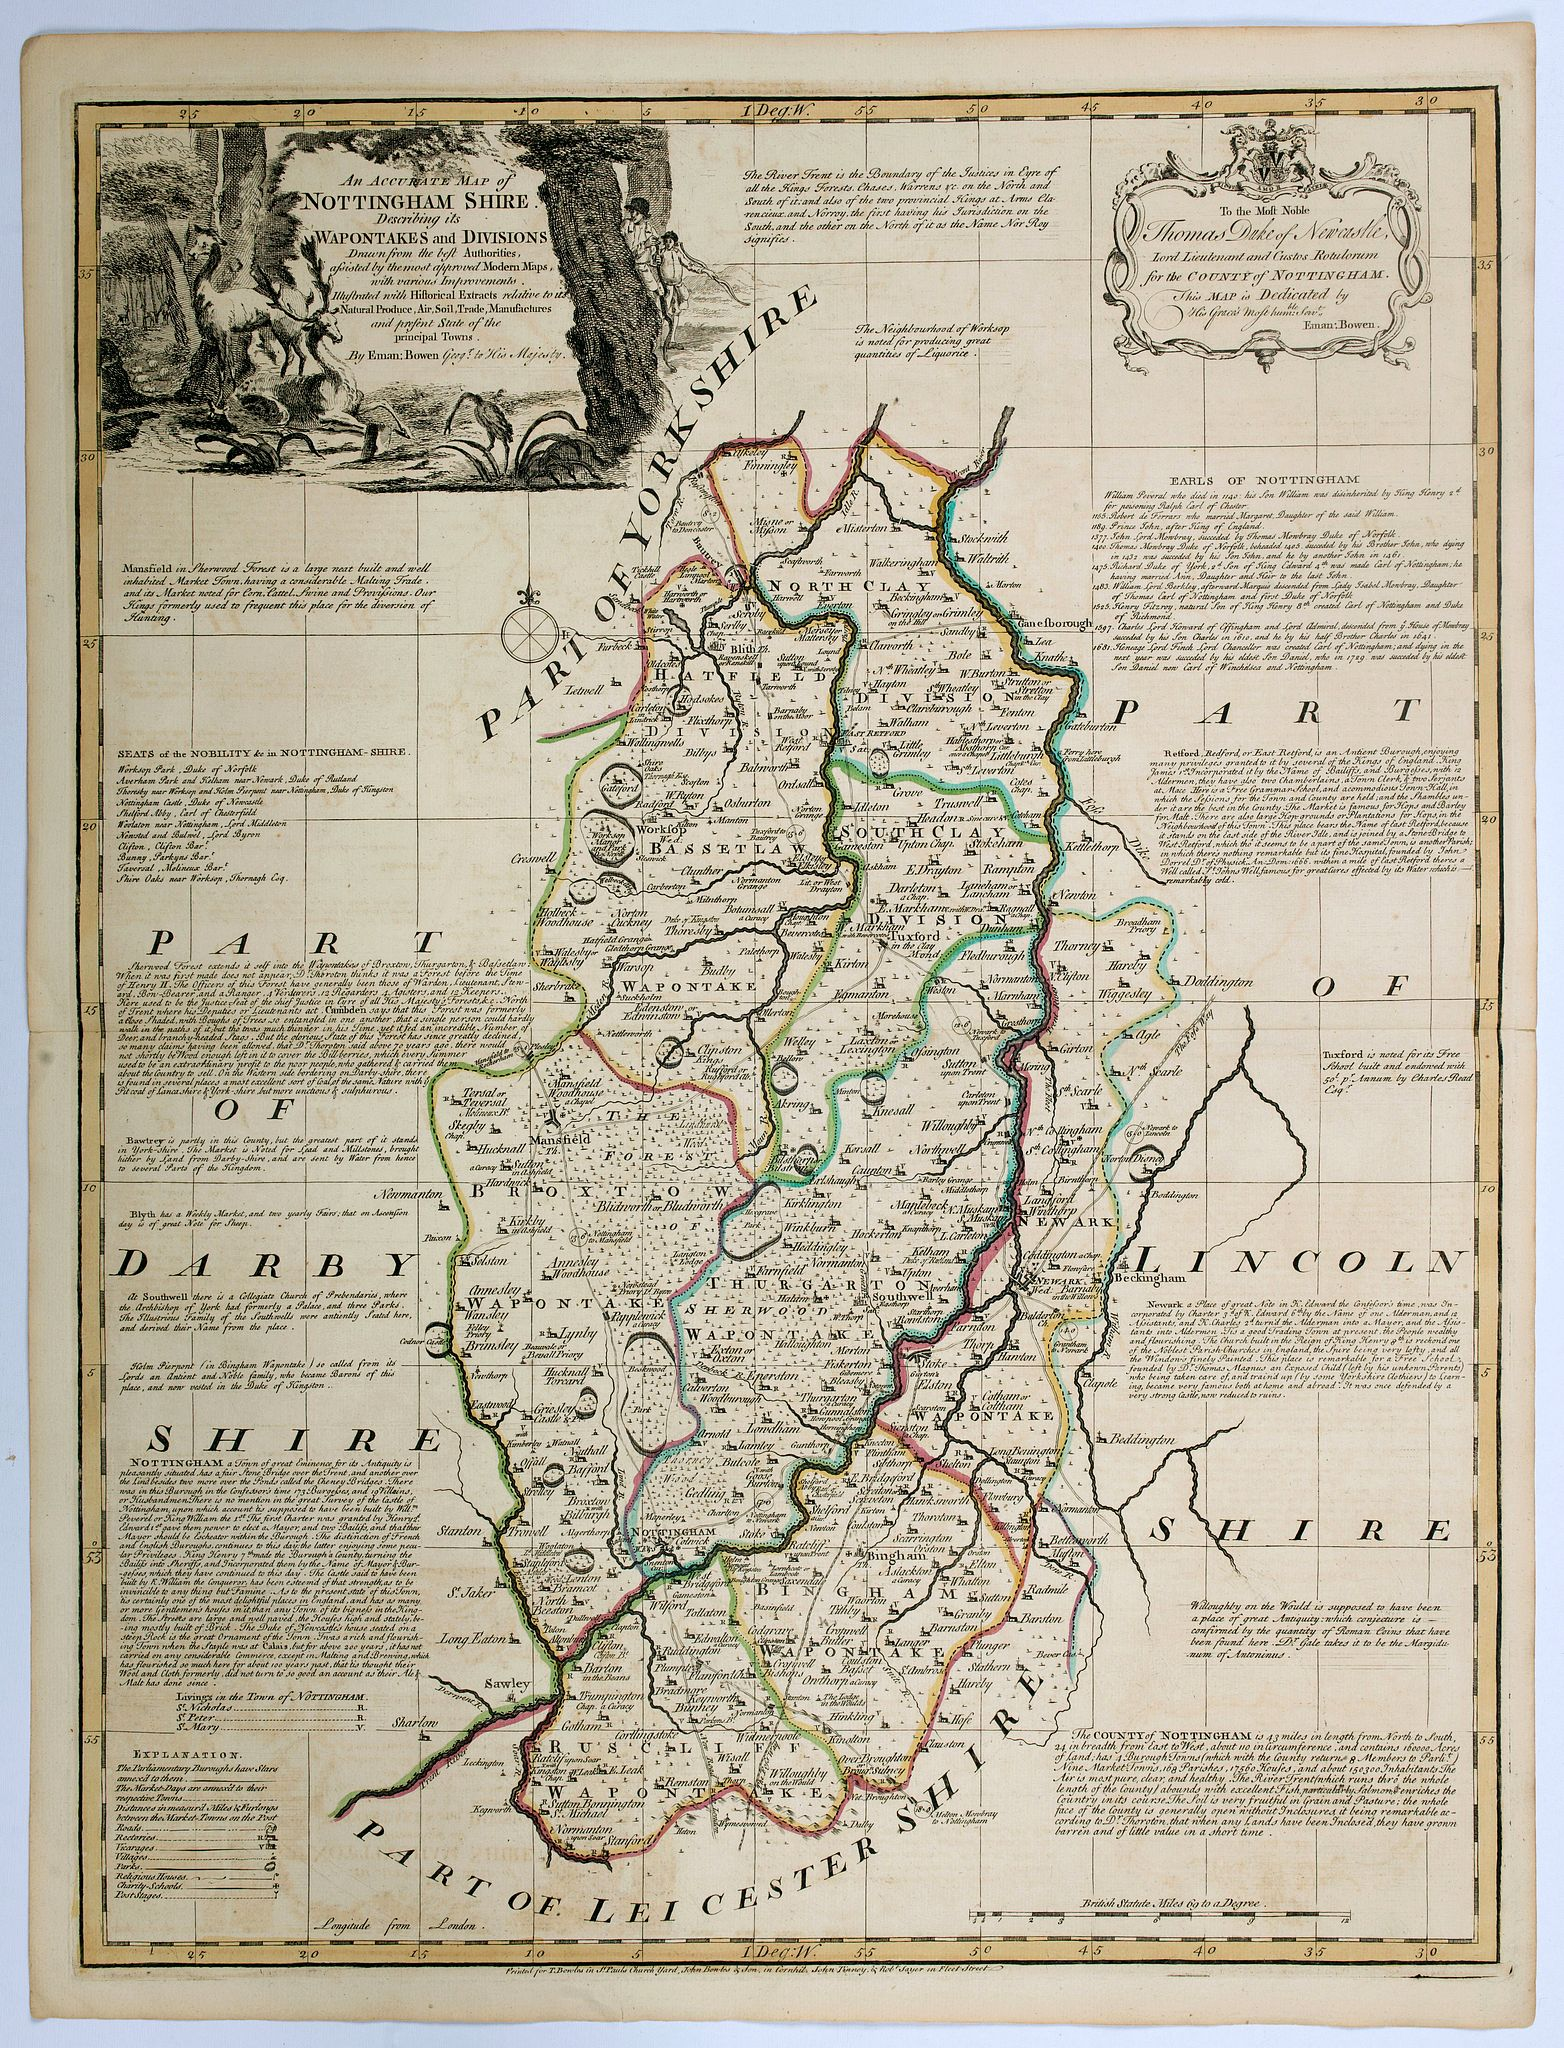 BOWEN, E / KITCHIN, T. - An Accurate Map of Nottingham Shire divided into its Wapontakesand Divisions drawn from the best Authorities . . .